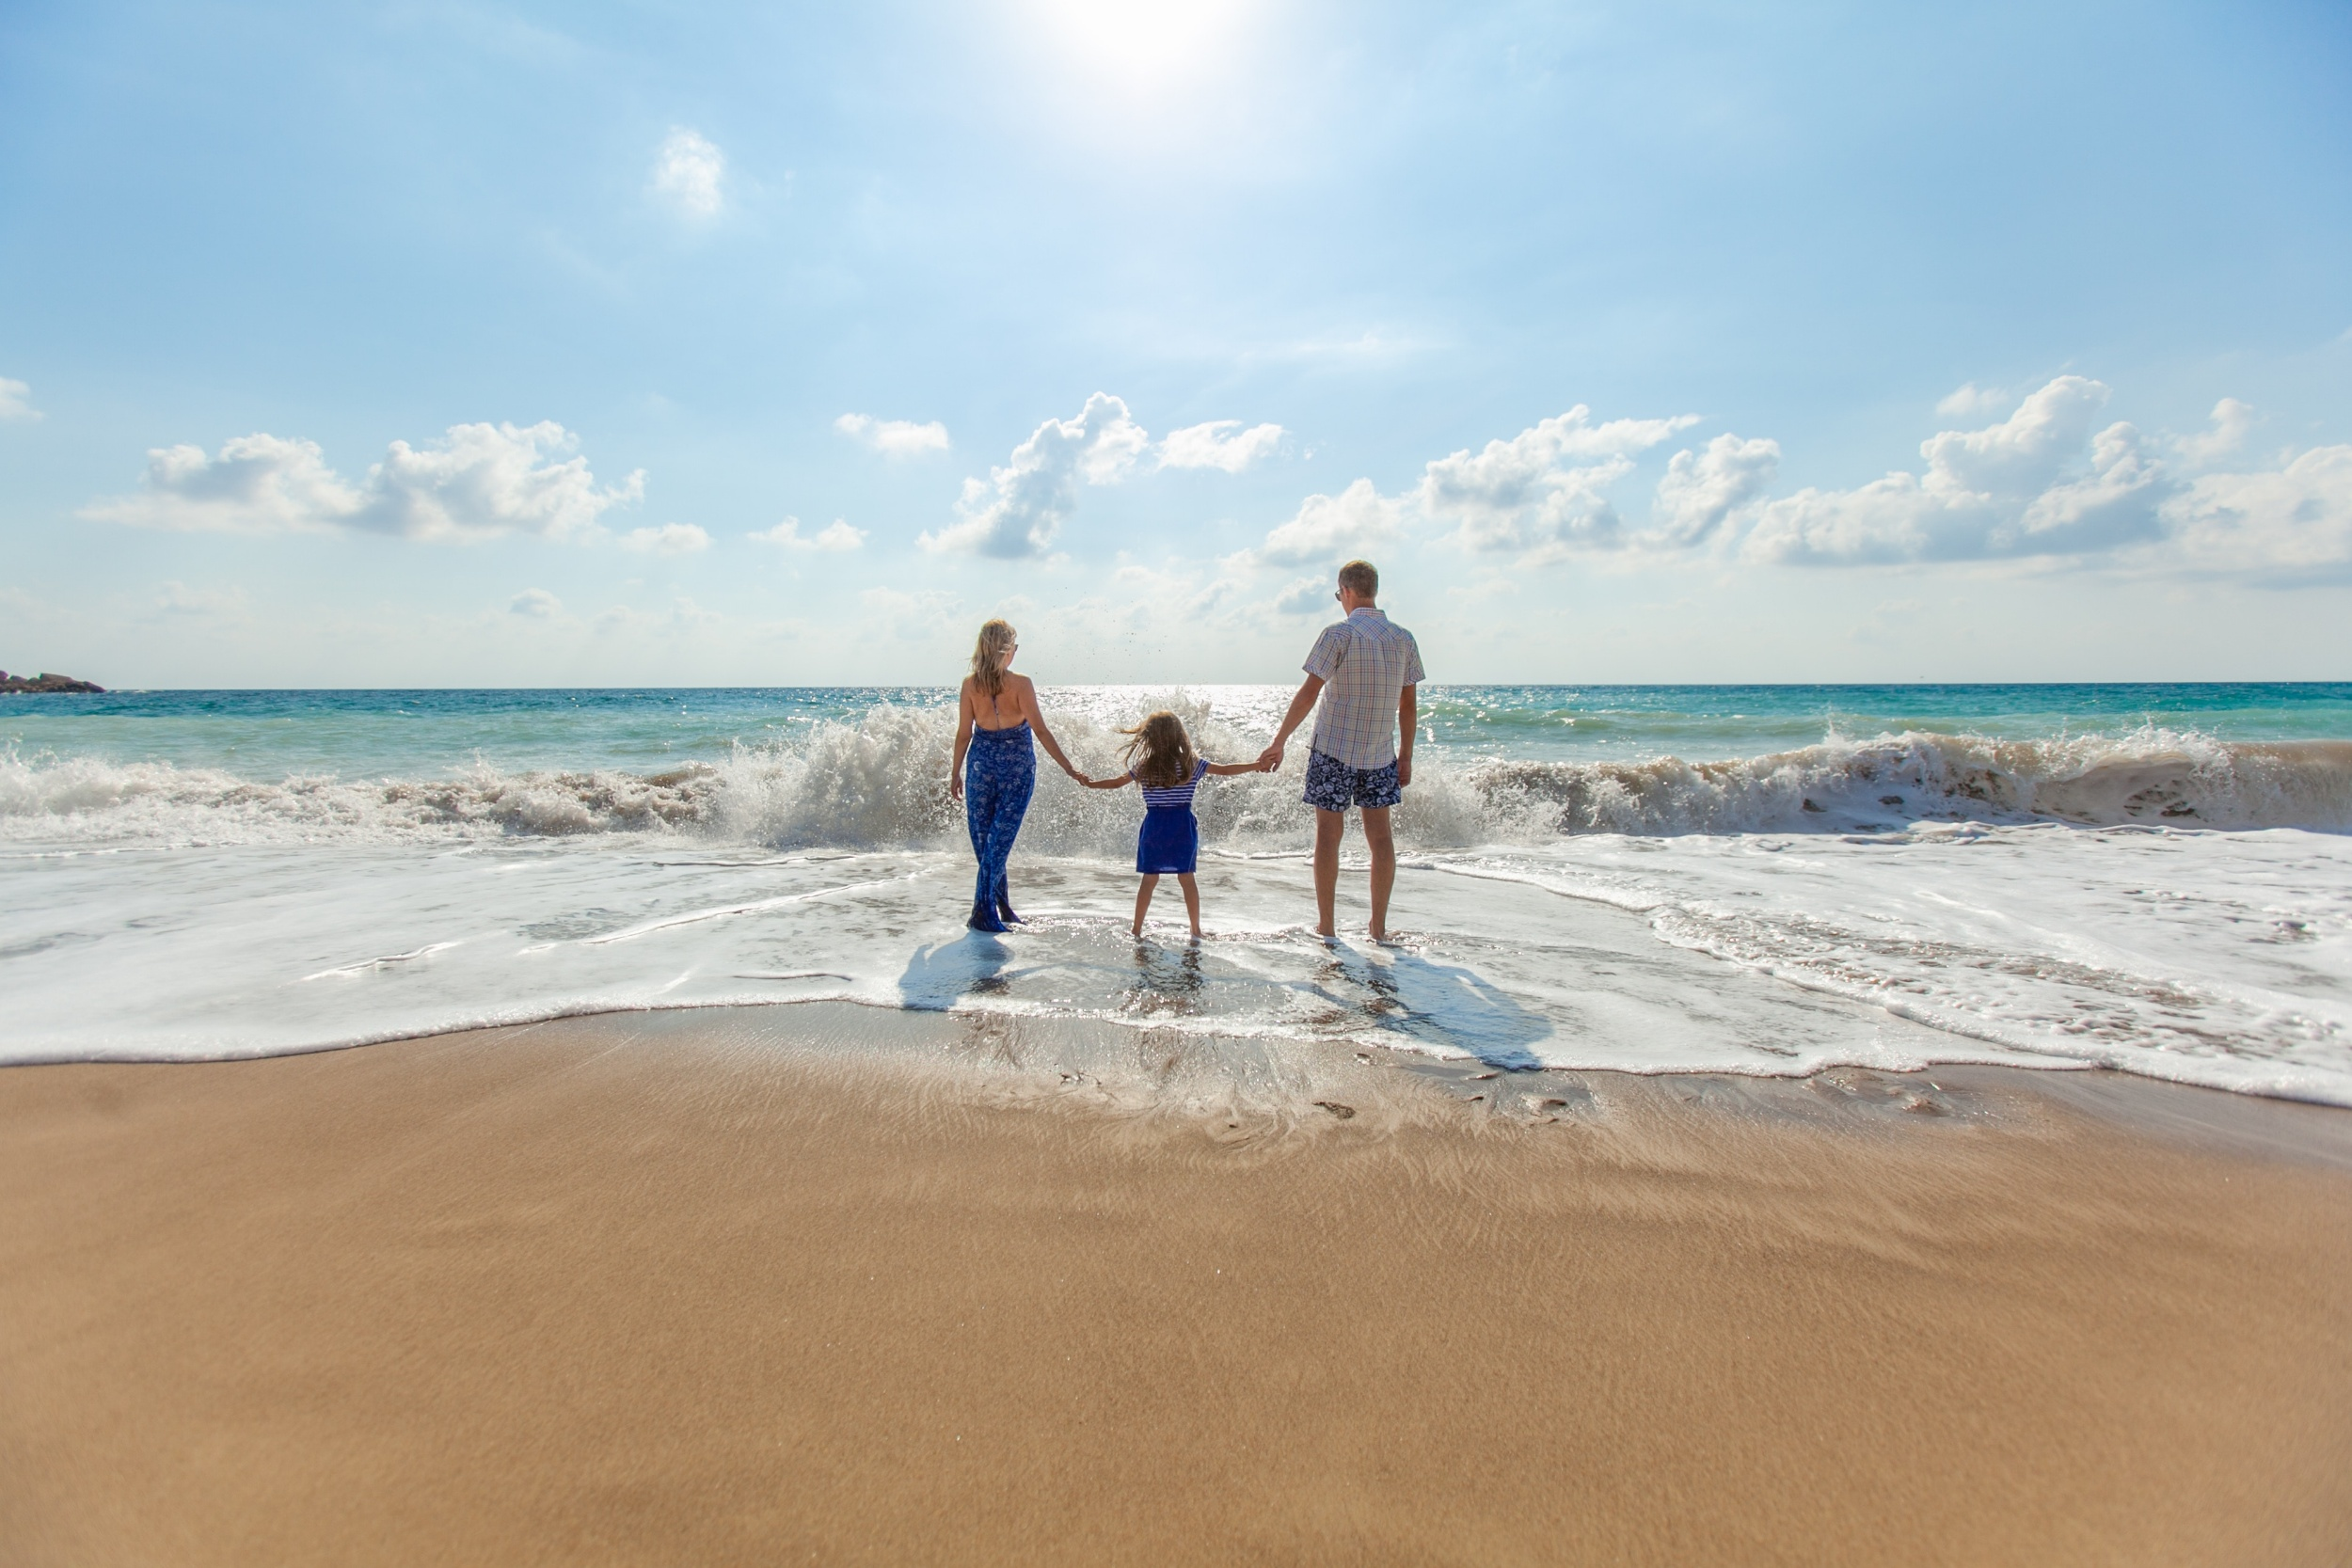 Cyprus beaches with family [Source: Unsplash]